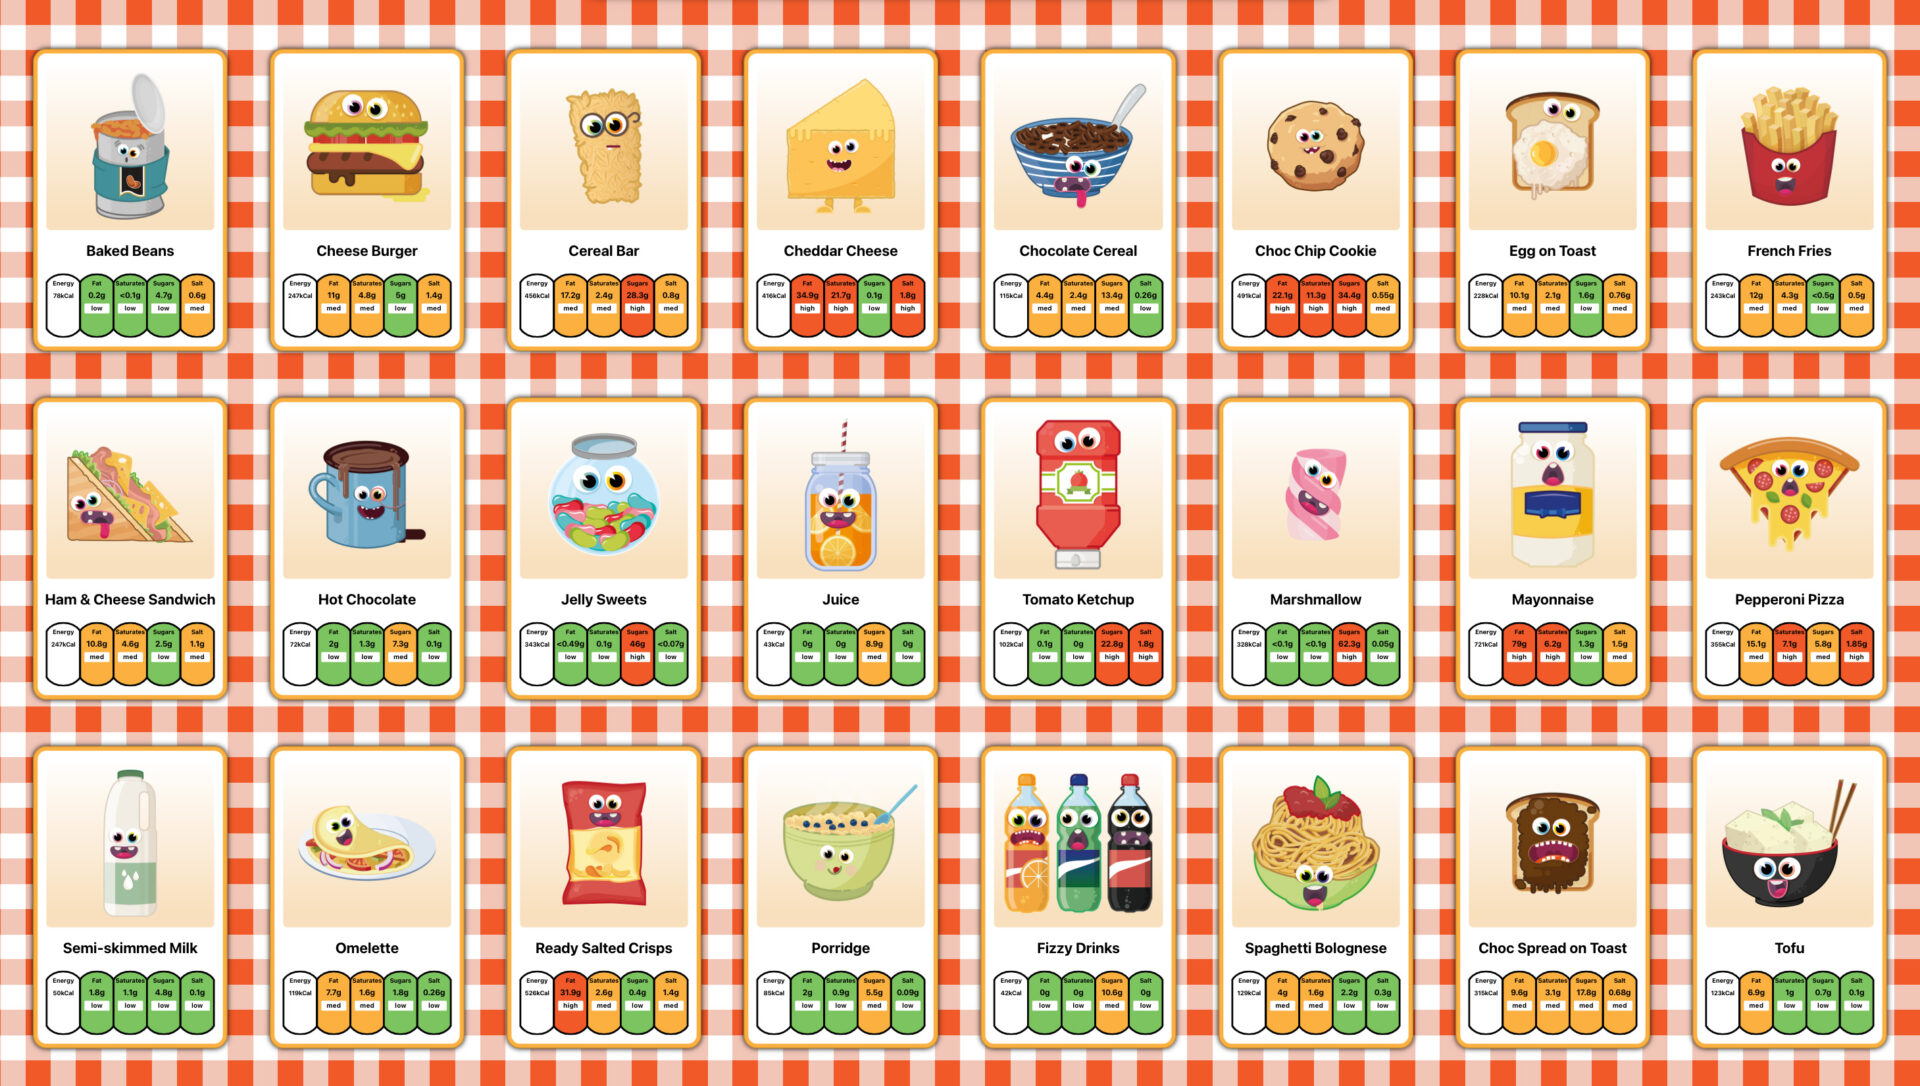 A grid of playing cards featuring cartoon food items and the traffic light style nutritional information